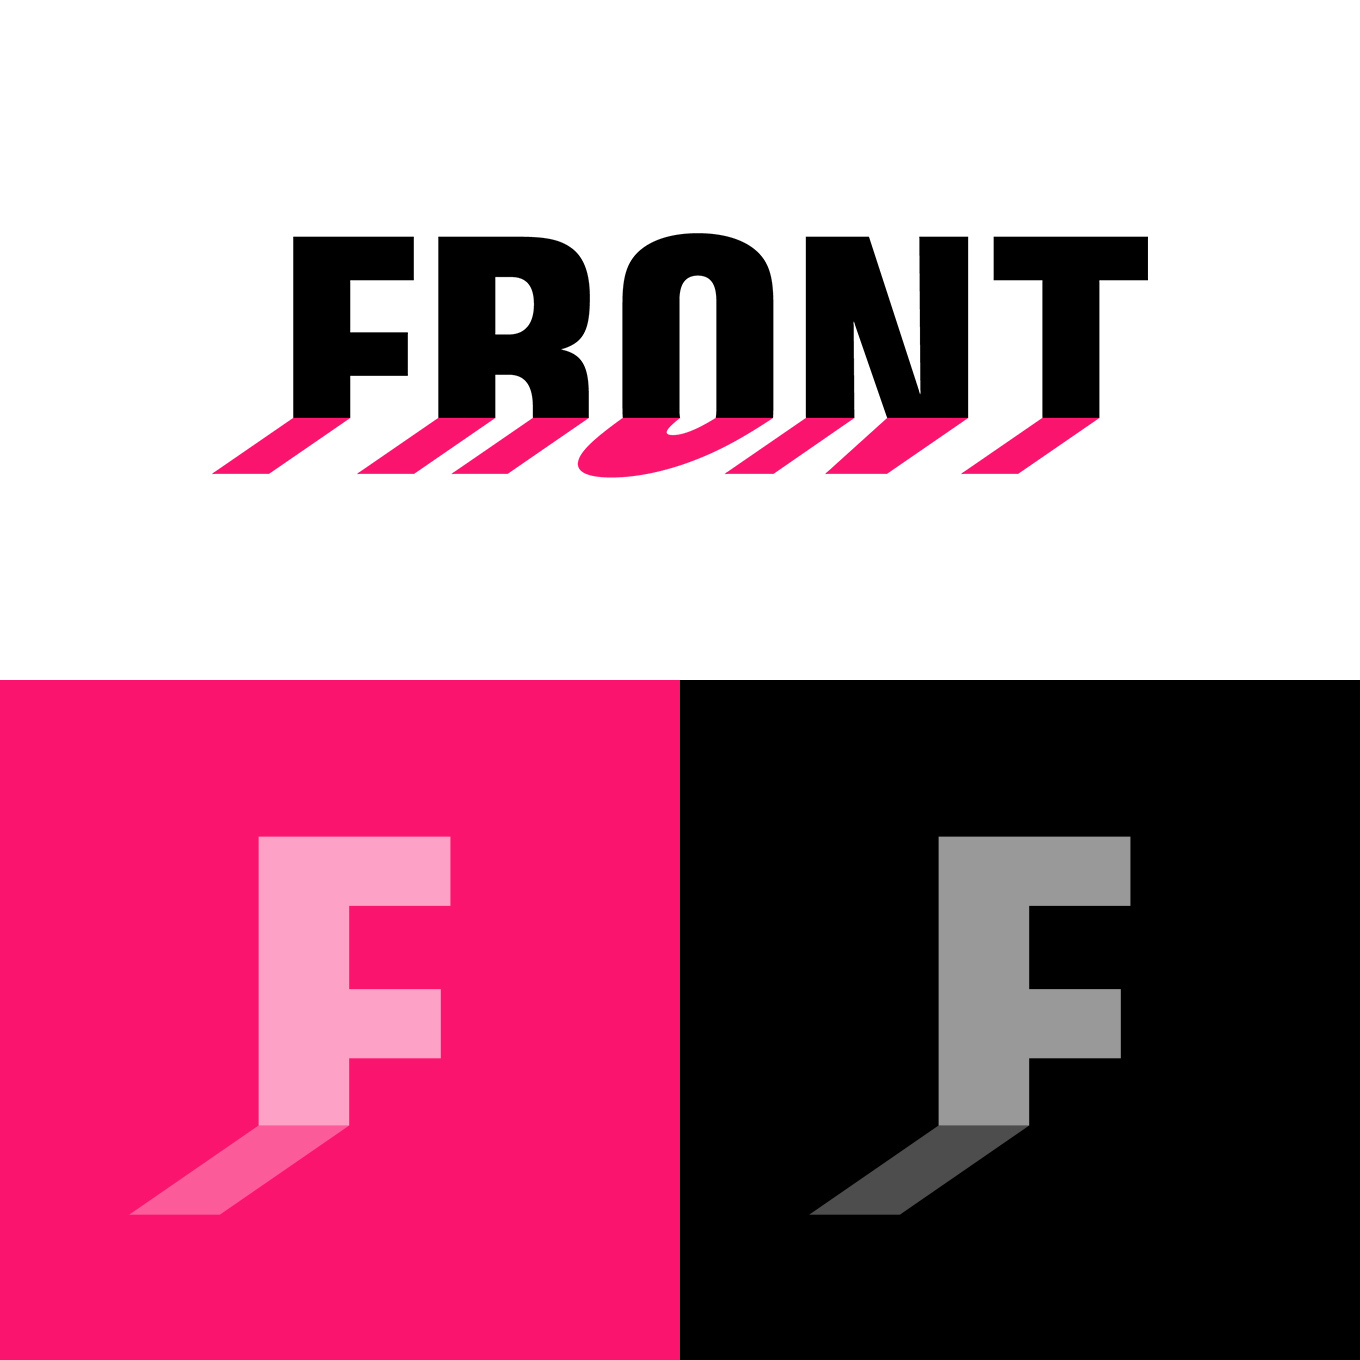 Logo design for FRONT International, shown as a logotype on white background and as a monogram on colored backgrounds